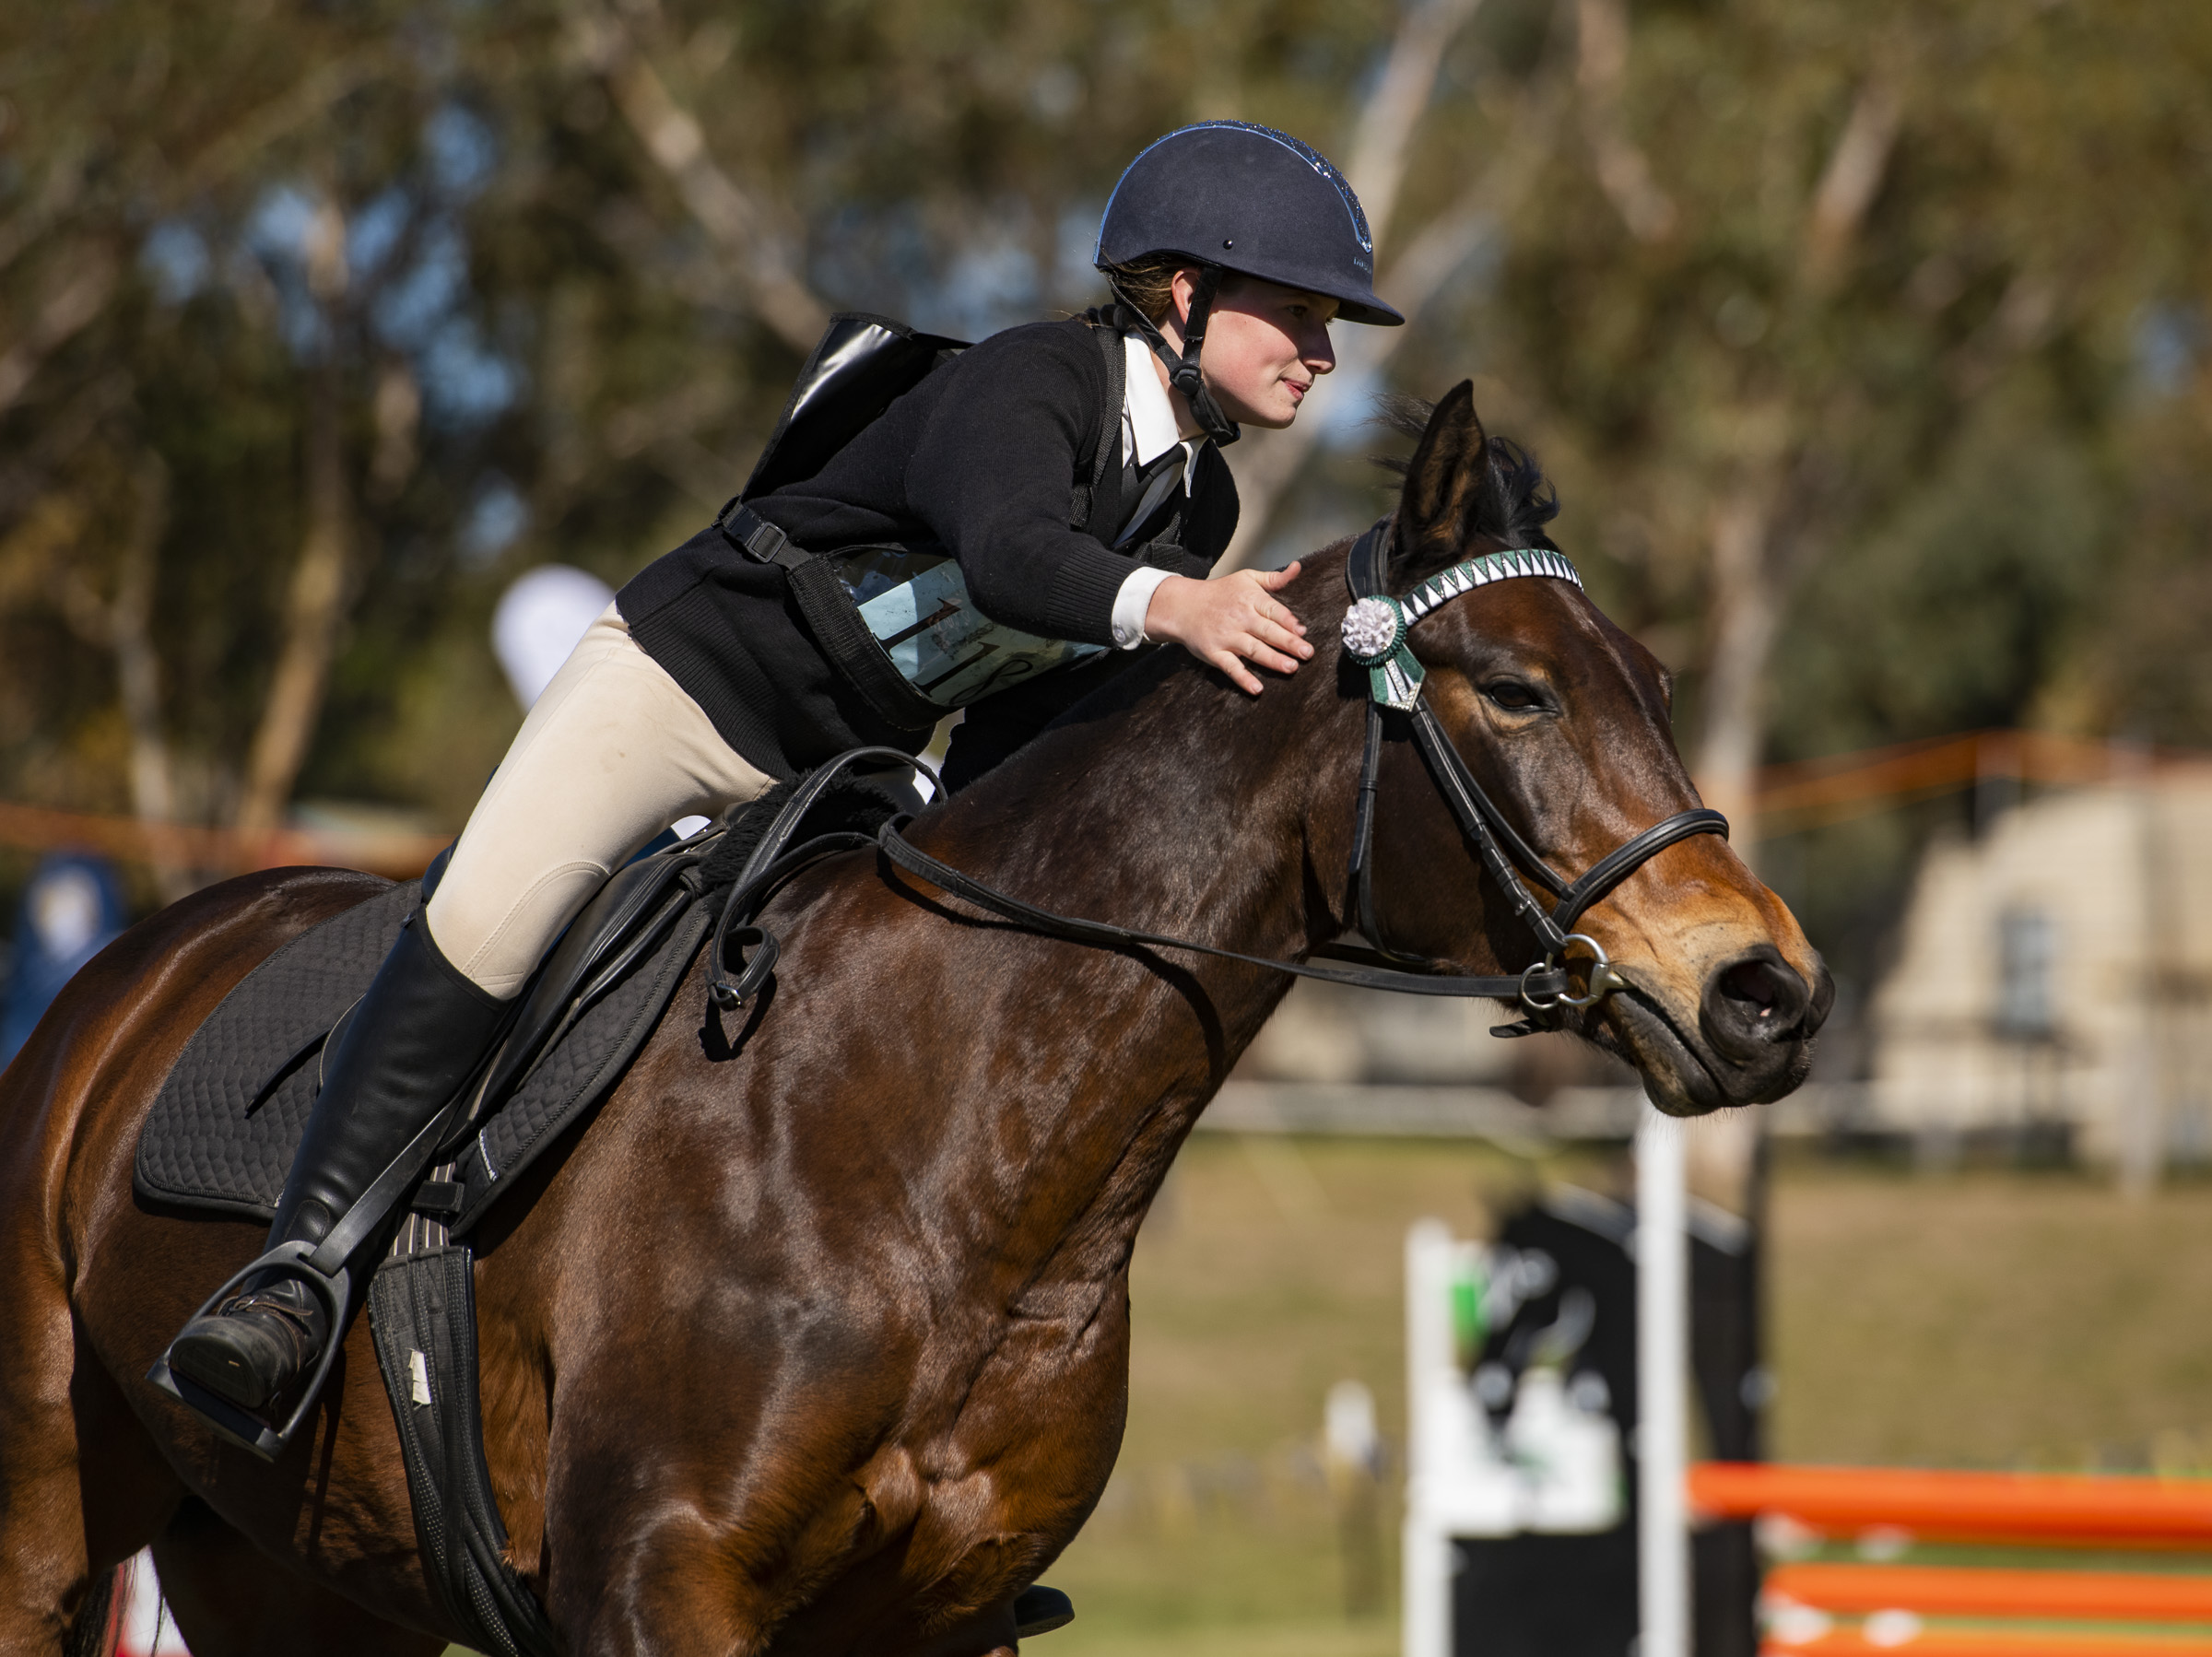 2019 - Day 3 - Image of the Day & Click here for Day 3 Gallery - Click on the above link to see the full gallery of images from Day 3We love to see the love a rider has for their horse after a clear round of a challenging jump course. Congratulations to our Image of the Day winner - image 1395. Please get in touch so we can coordinate your prize.